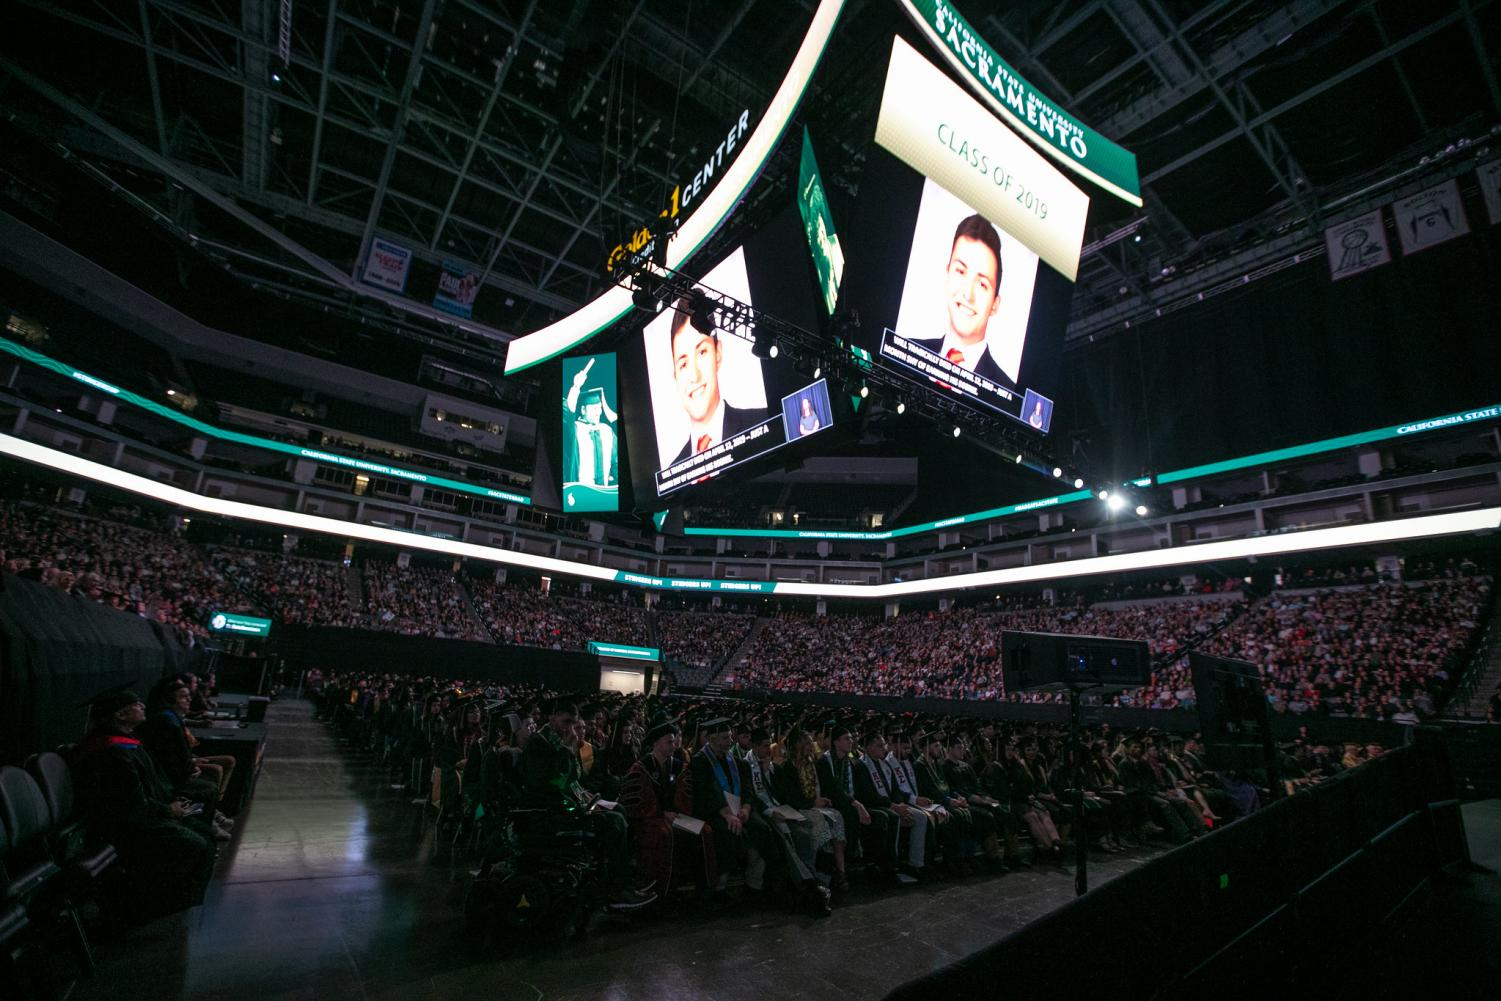 Images of William Molina were displayed on monitors at the Golden 1 Center on Saturday, May 18 at Sac State's College of Business Administration commencement ceremony. Both Sac State President Nelsen and graduate Mia Kagianas paid tribute to him during their speeches, citing Molina's impact on the campus community.